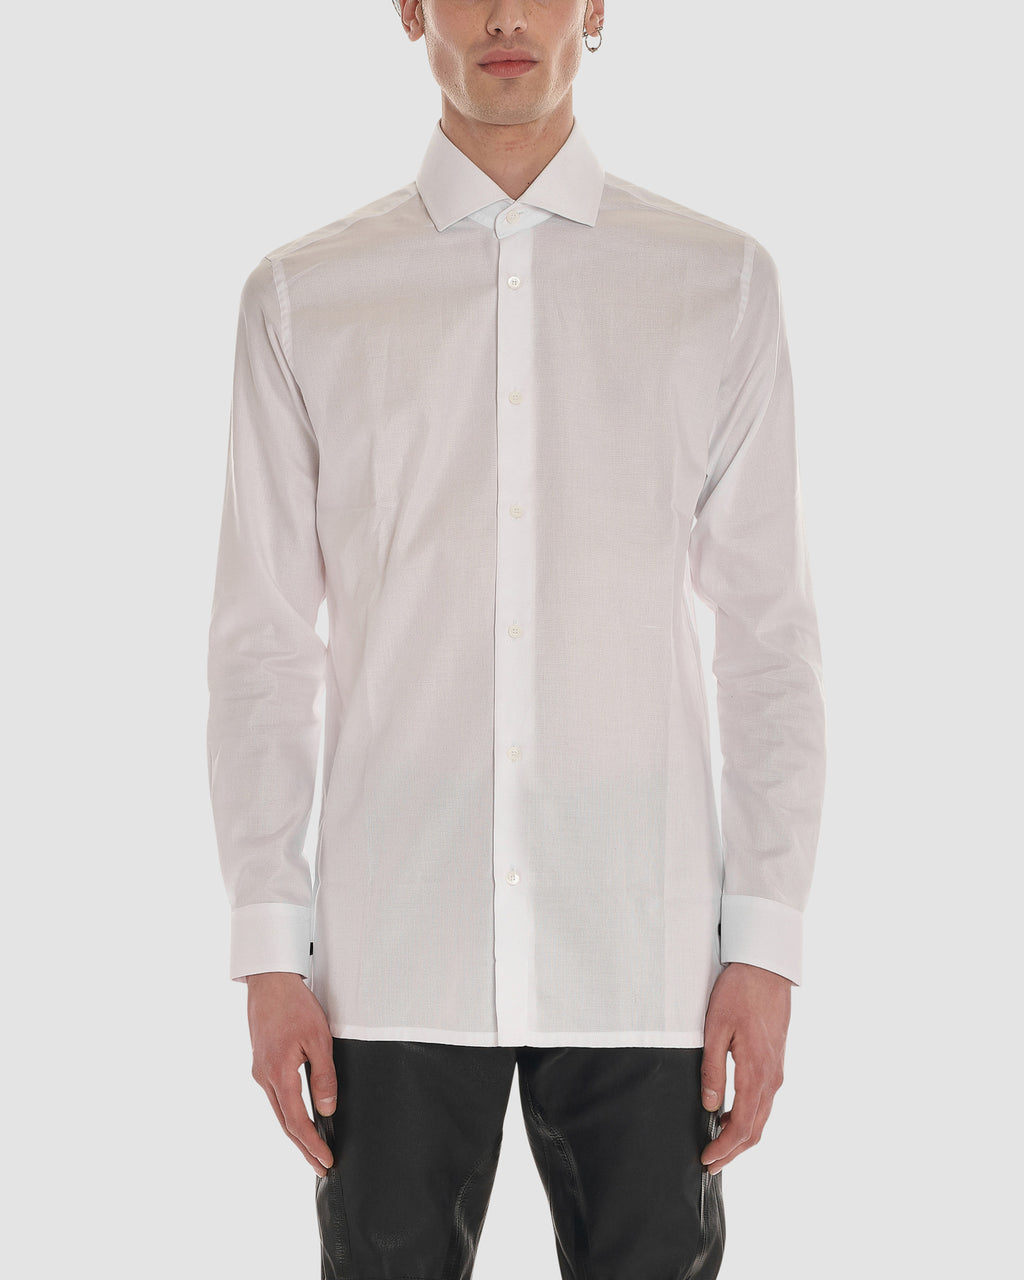 CLASSIC LONG SLEEVE BUTTON UP